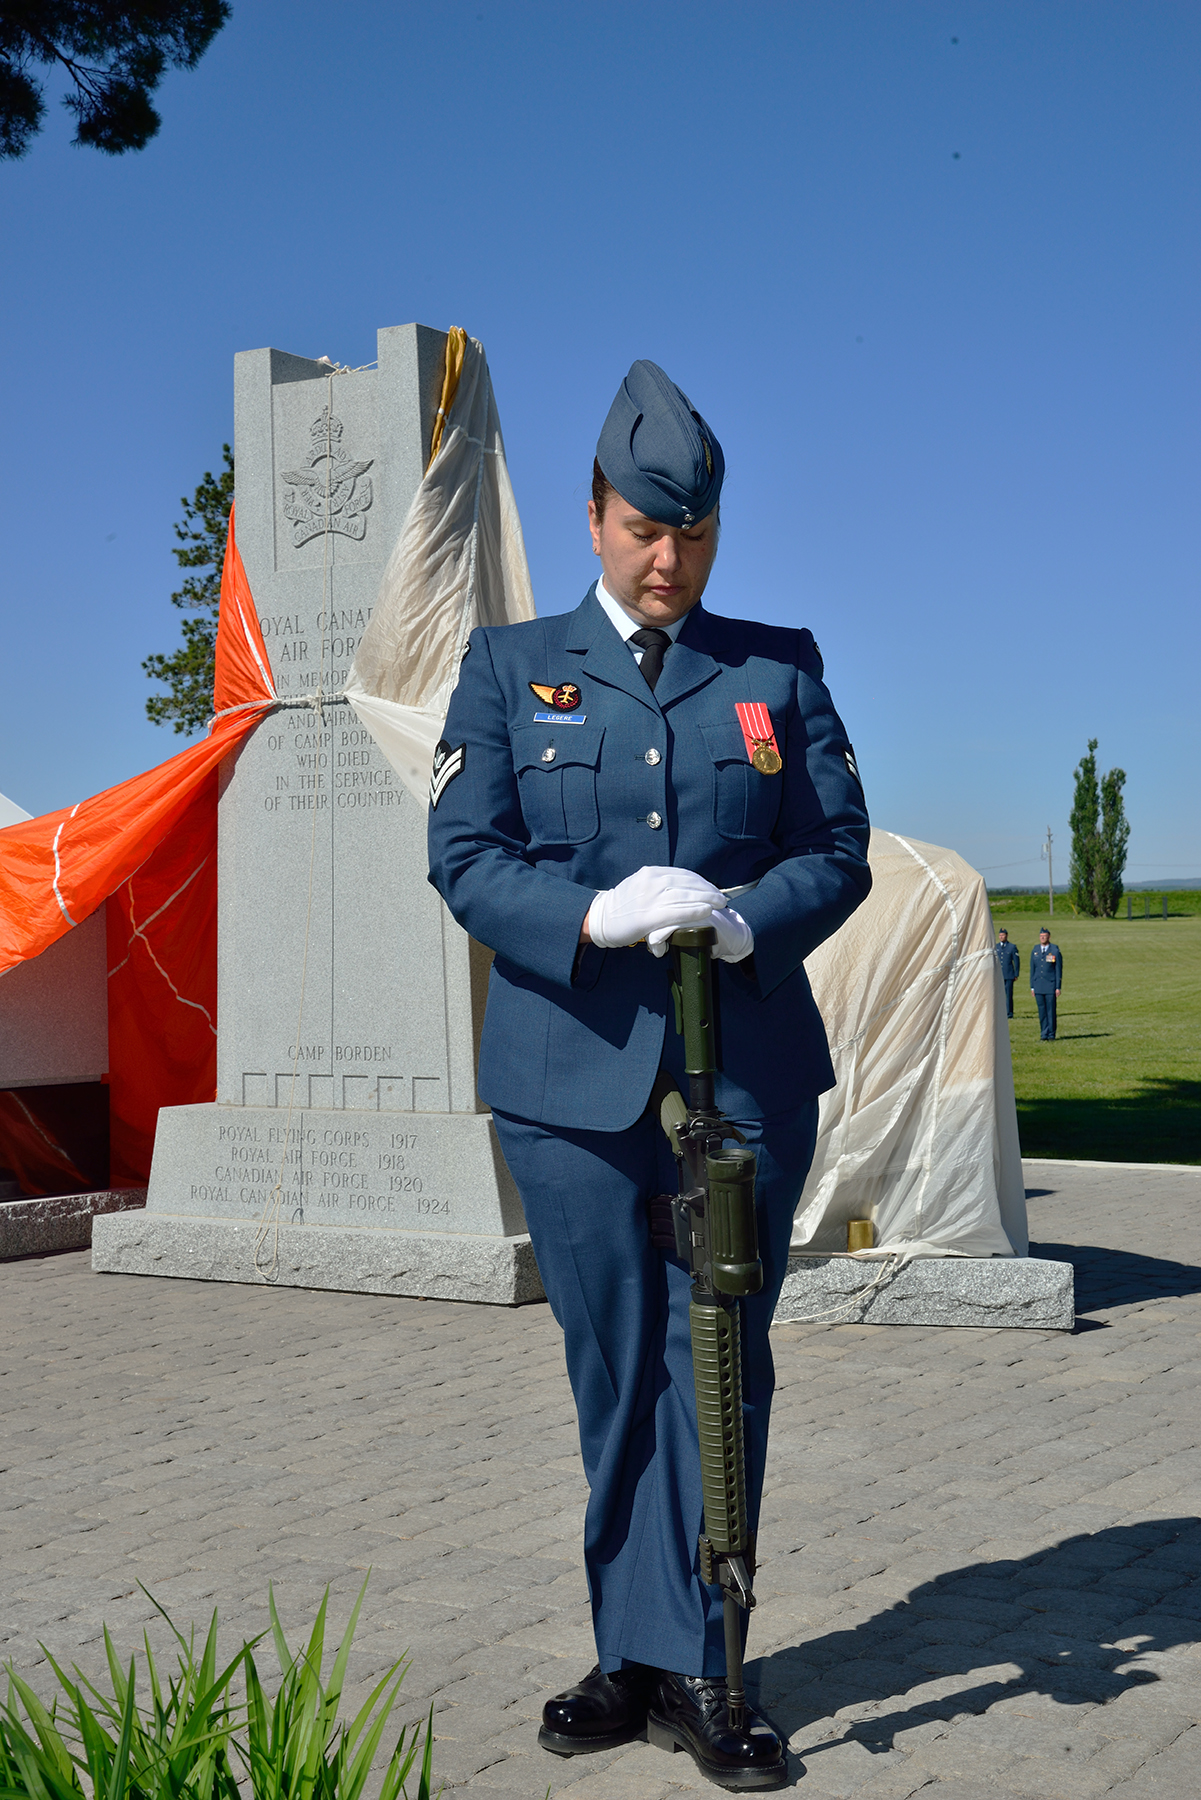 Master Corporal Lillian Legere stands sentry behind the newly rebuilt Royal Canadian Air Force Memorial at 16 Wing/Canadian Forces Base Borden, Ontario, before the unveiling parade on June 3, 2017. PHOTO: Sergeant Christopher Bentley, BM01-2017-0174-09